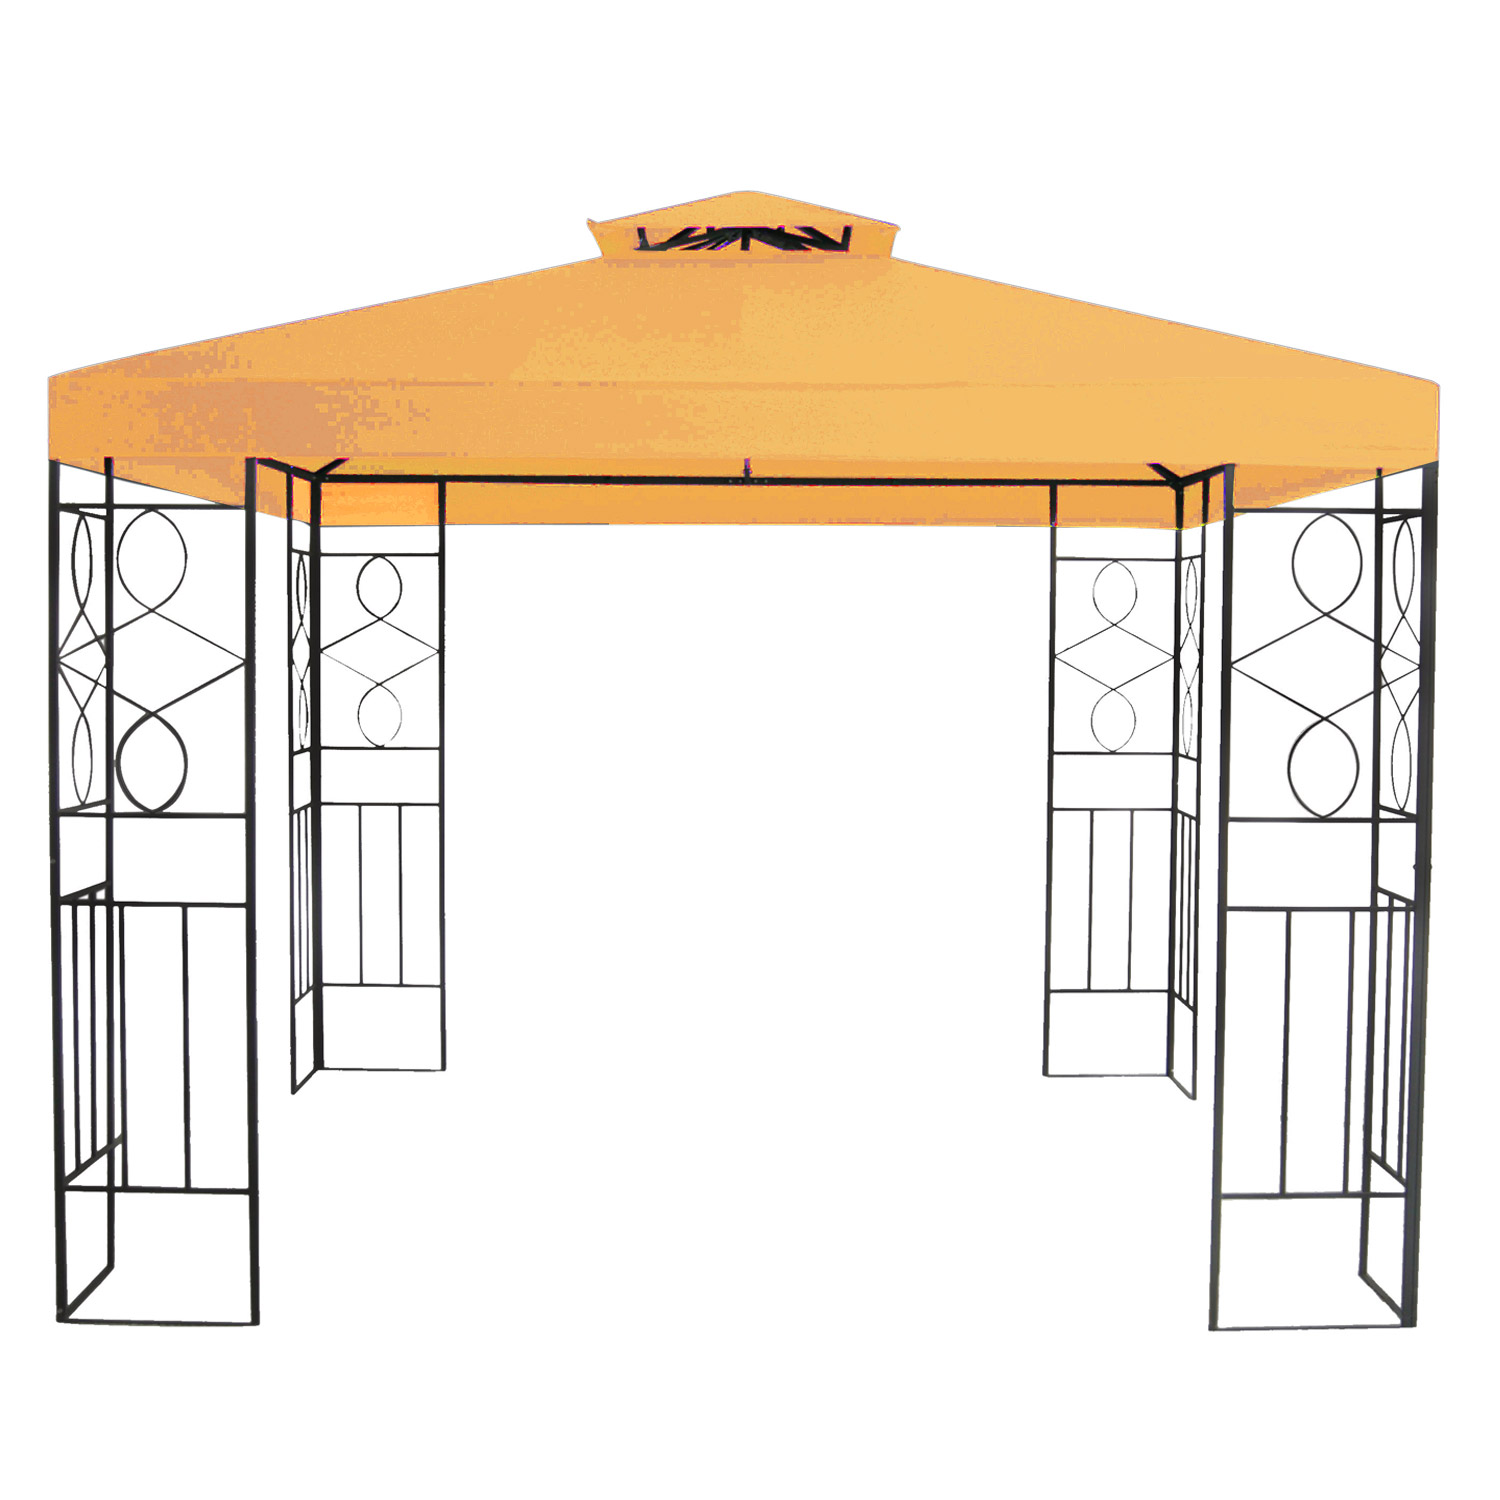 pavillon 3x3m metall gartenpavillon festzelt dach zelt garten wasserfest orange 4260237783466 ebay. Black Bedroom Furniture Sets. Home Design Ideas